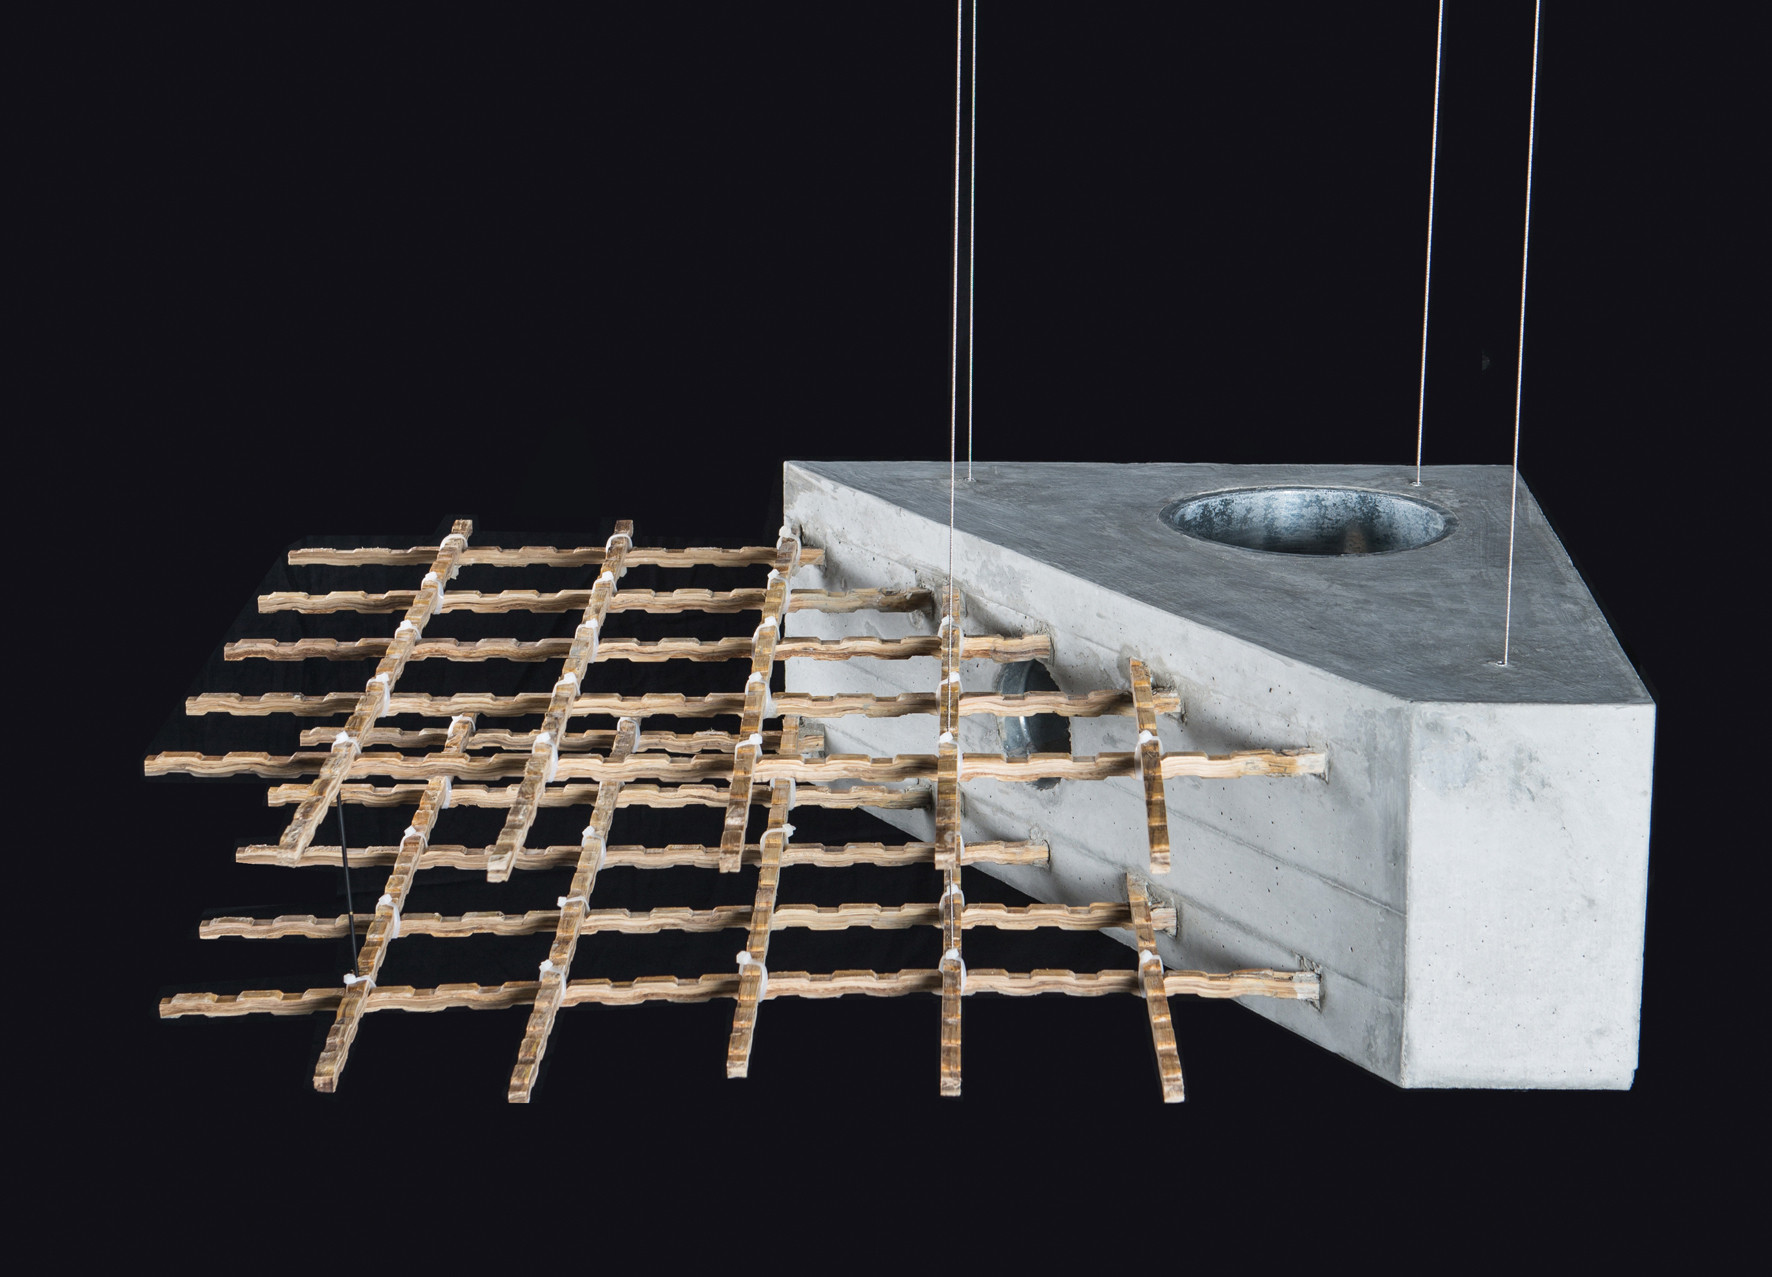 Bamboo: © Professorship of Architecture and Con- struction Dirk E. Hebel, ETH 3) Zürich / FCL Singapore